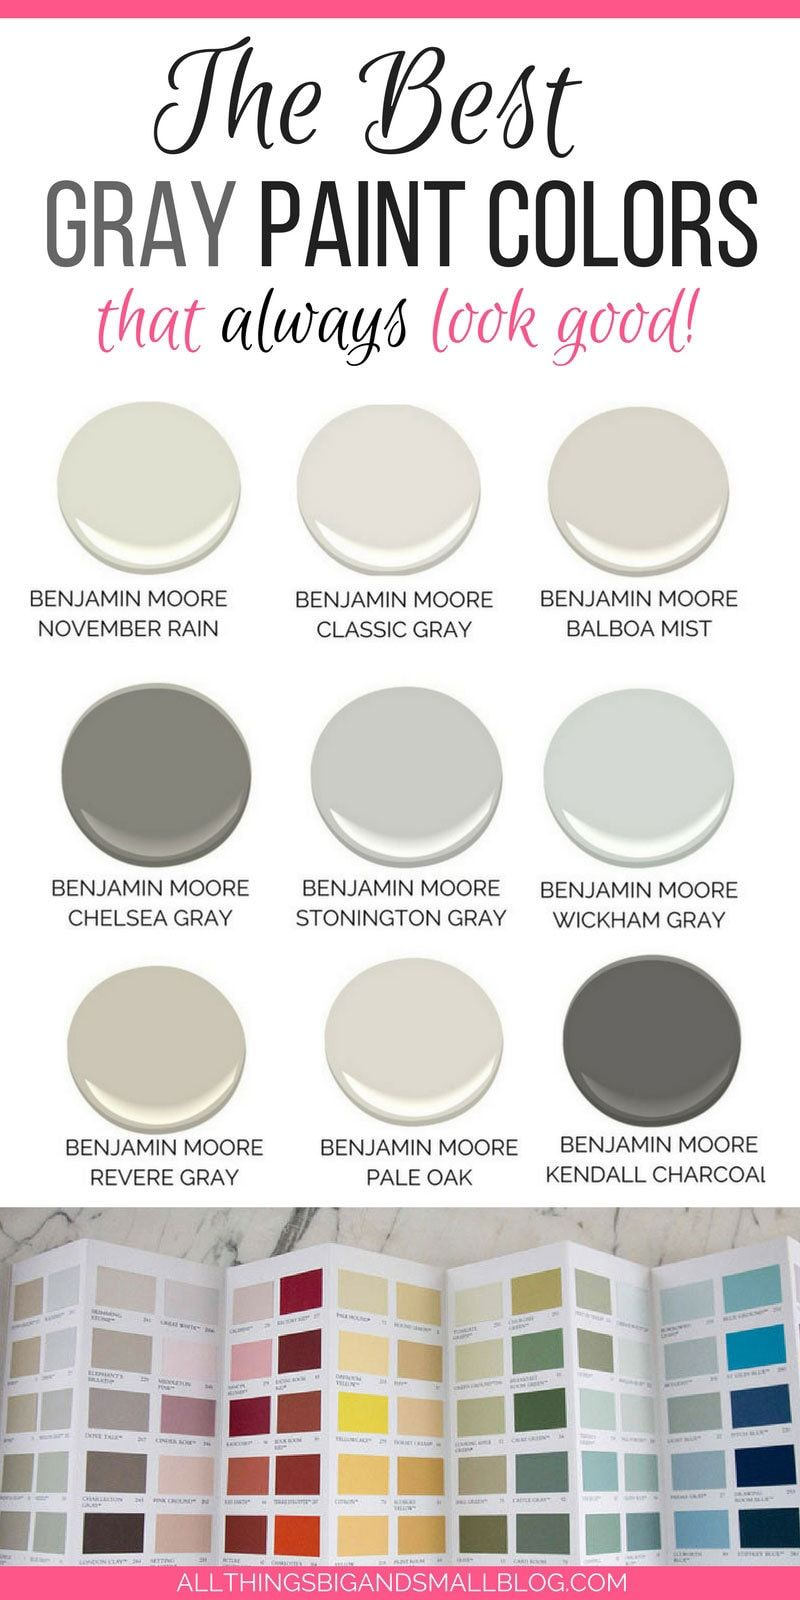 Light Gray Paint Colors For Your Home In Collage The Best Neutral Gray Paints Picked By Desi Popular Grey Paint Colors Light Grey Paint Colors Best Gray Paint